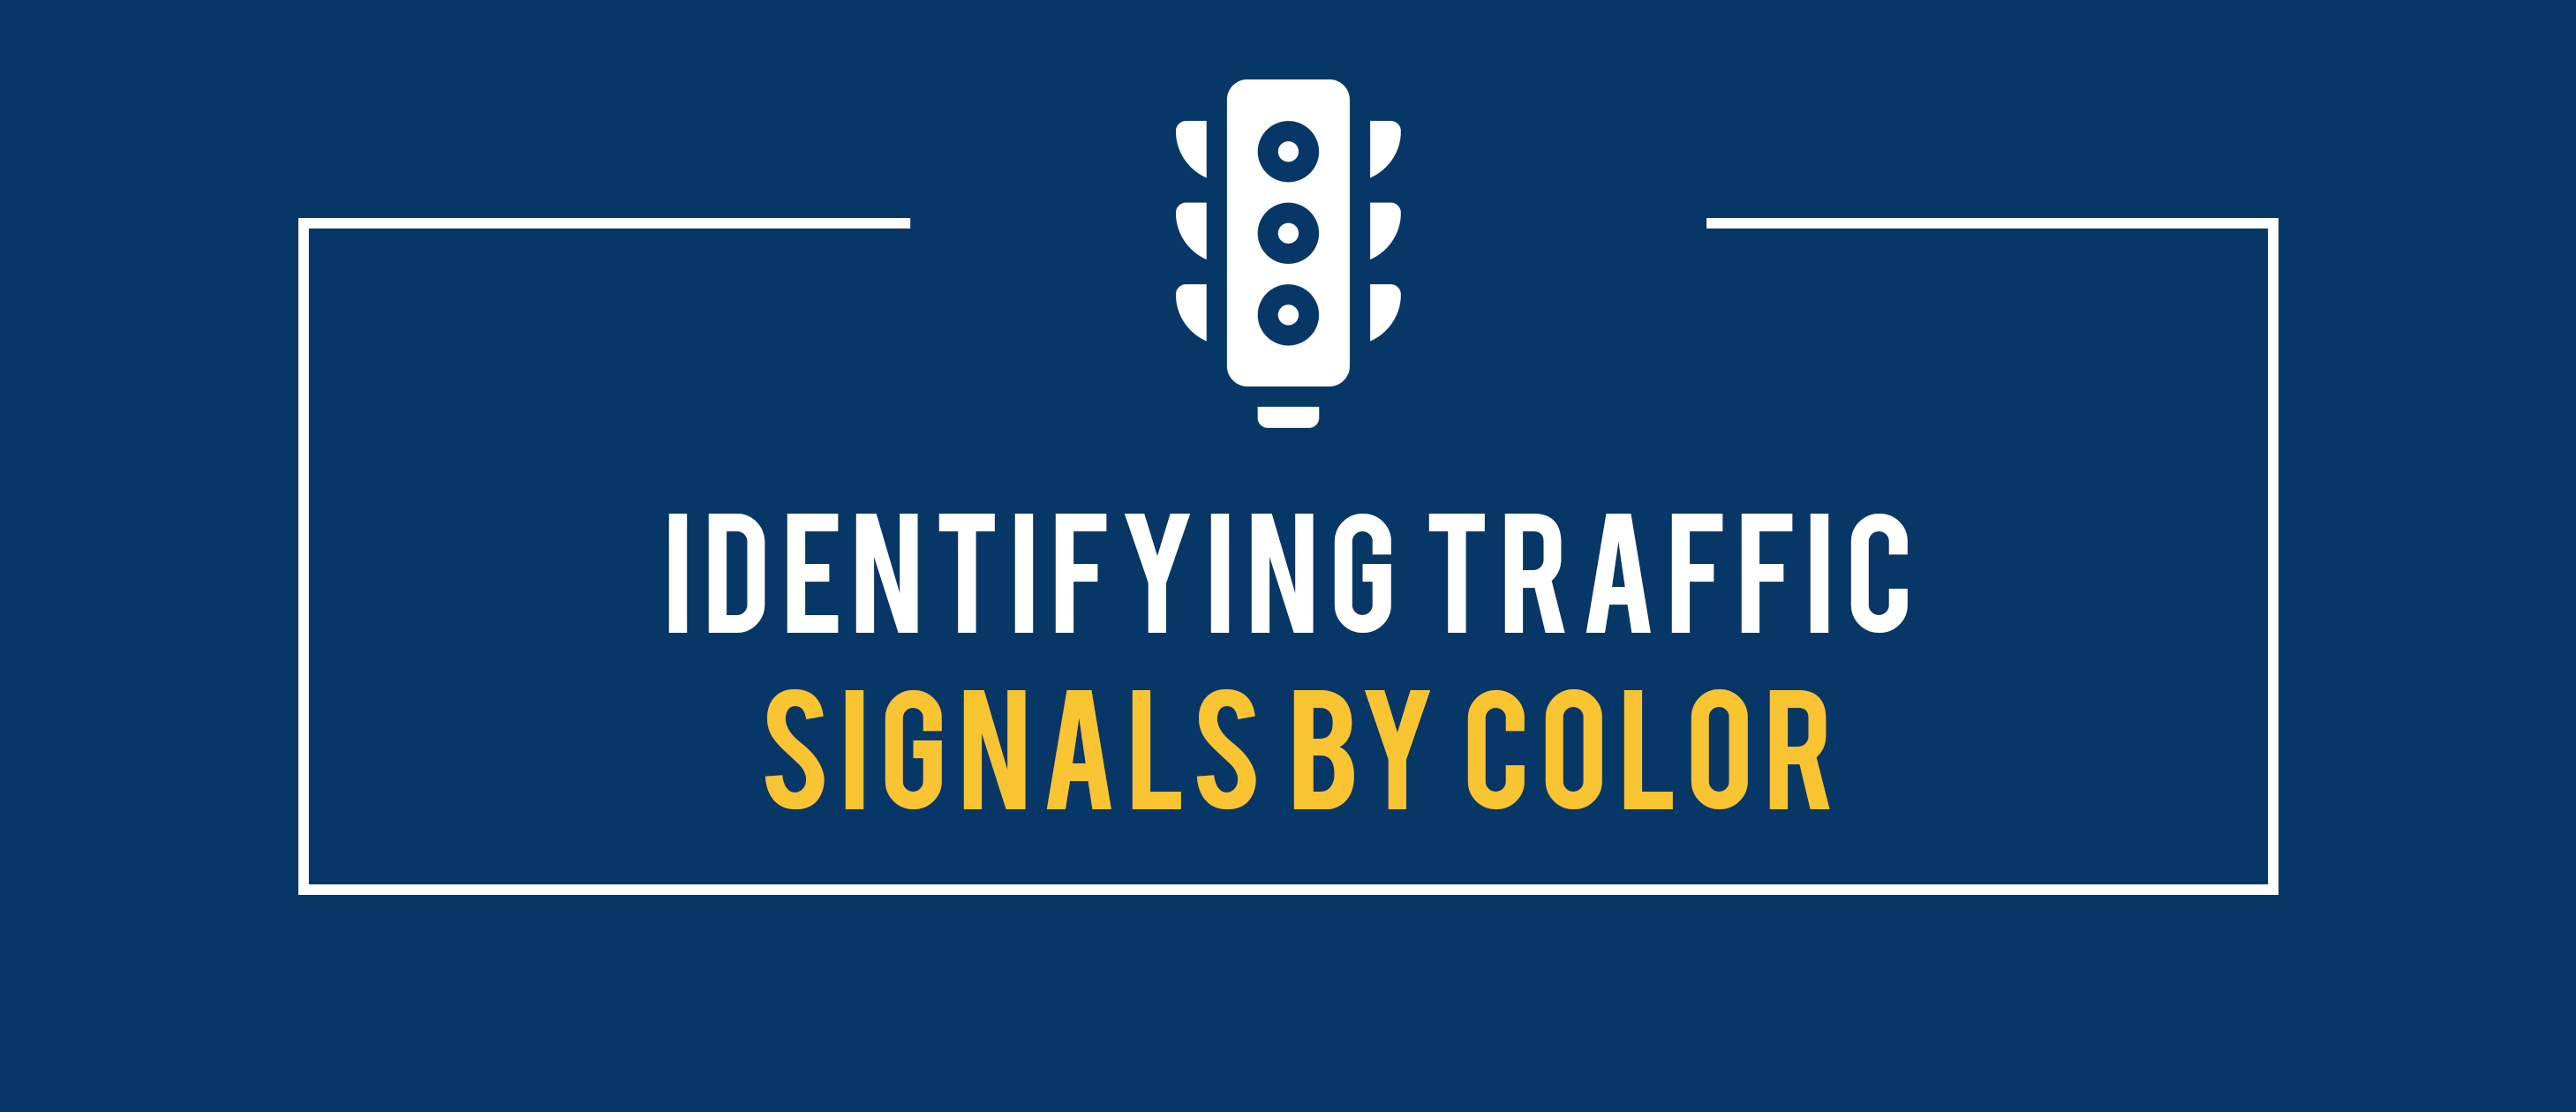 Identifying traffic signals by color.